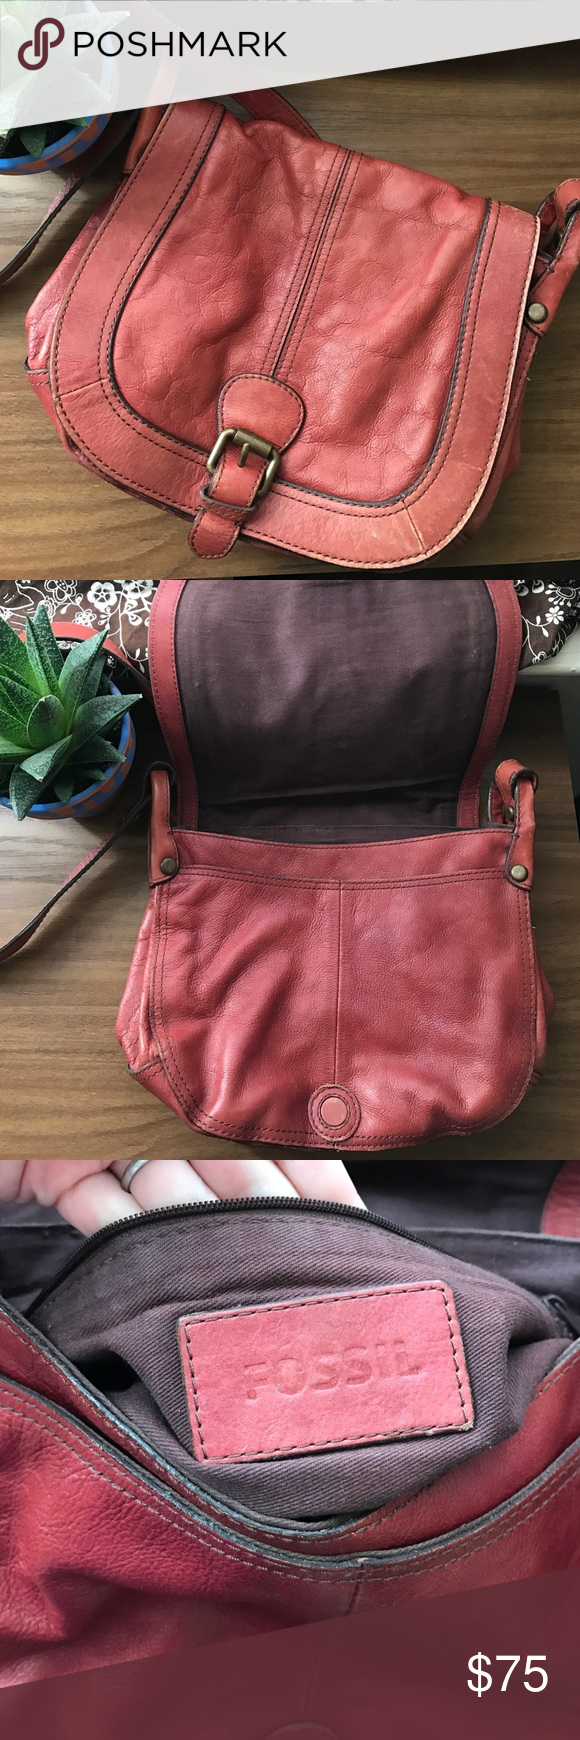 Red Leather Fossil cross body bag Soft red leather bag from Fossil used and well loved with lots of life still in it, I just don't reach for it any more. Magnetic closure with 2 large pockets and 2 small pockets 1 zippered pocket. Fossil Bags Crossbody Bags